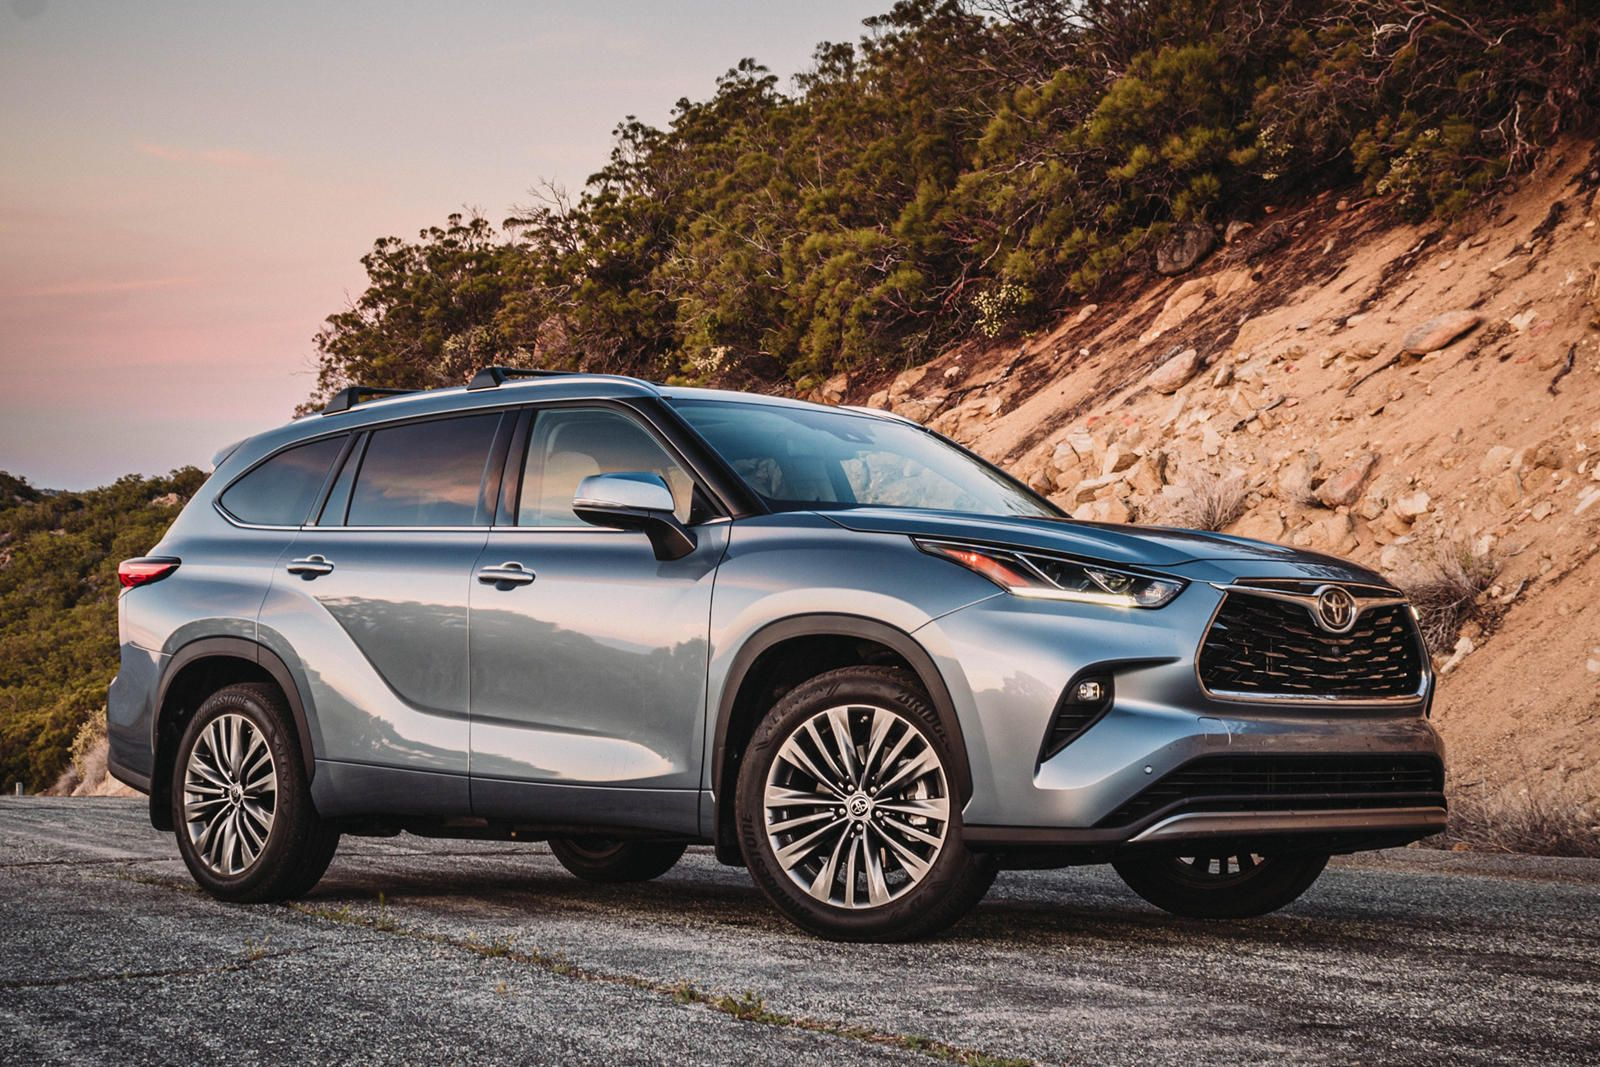 2020 Toyota Highlander Test Drive Review The Every Family S Suv In 2020 Toyota Highlander Highlander Toyota